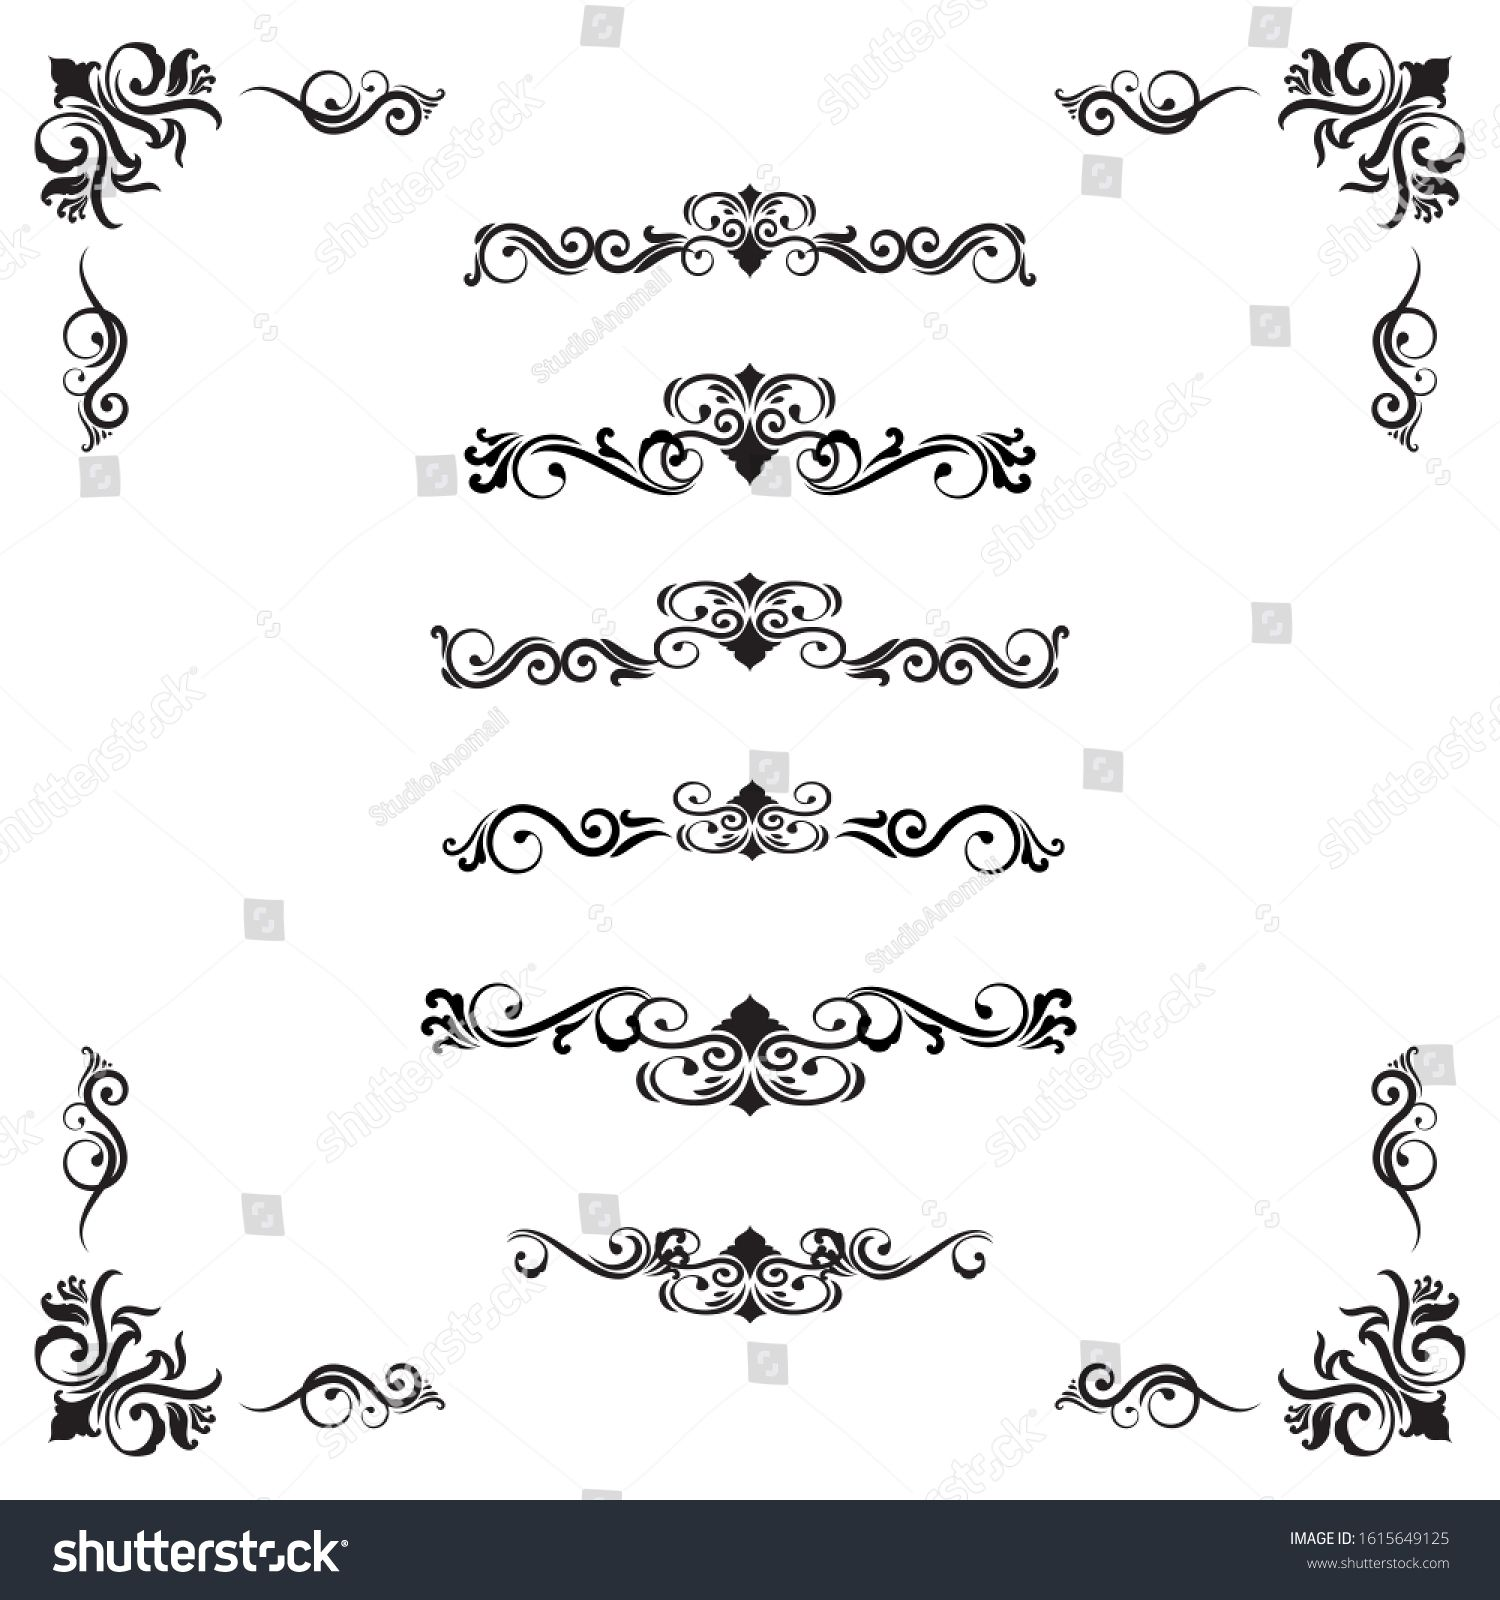 Classic Ornament Frame Vintage Border Stock Vector Royalty Free 1615649125 In 2020 Ornament Frame Vintage Borders Chinese Patterns